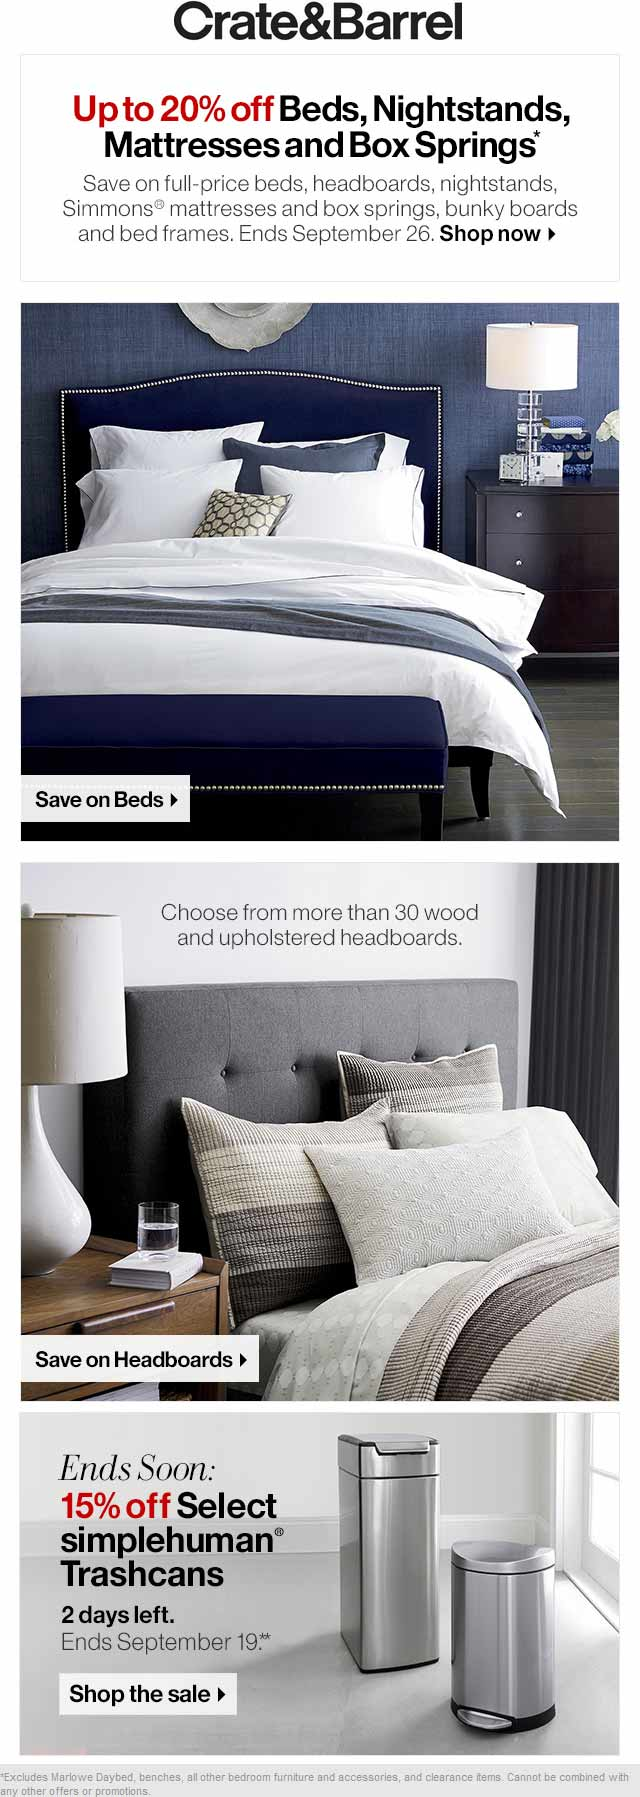 Crate & Barrel Coupon October 2016 20% off beds & mattresses at Crate & Barrel